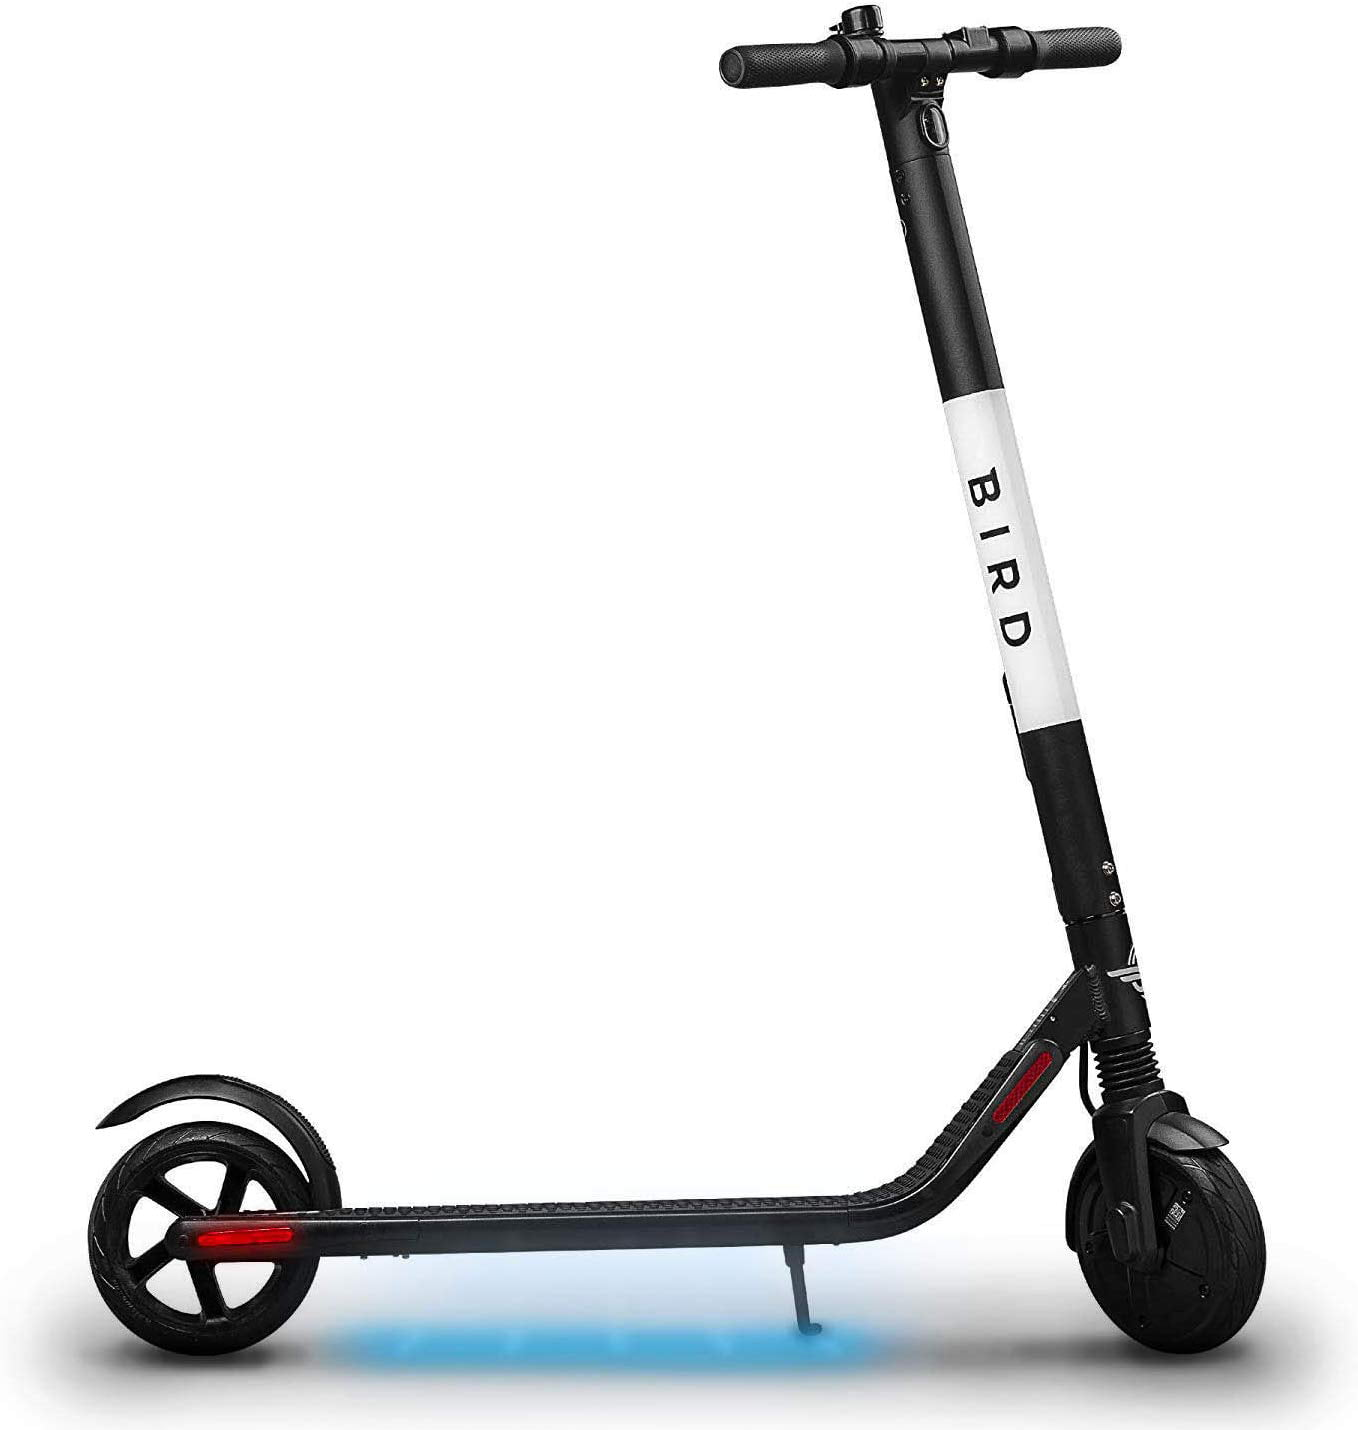 Bird ES1-300 Electric Scooter-300 Watt Motor, Ground Effect Lights, Front Shock Absorption, UL-2272 Approved, 15.5 MPH and 15.5 Mile Range, Ultra-Lightweight, Electric Scooter for Adults - Walmart.com